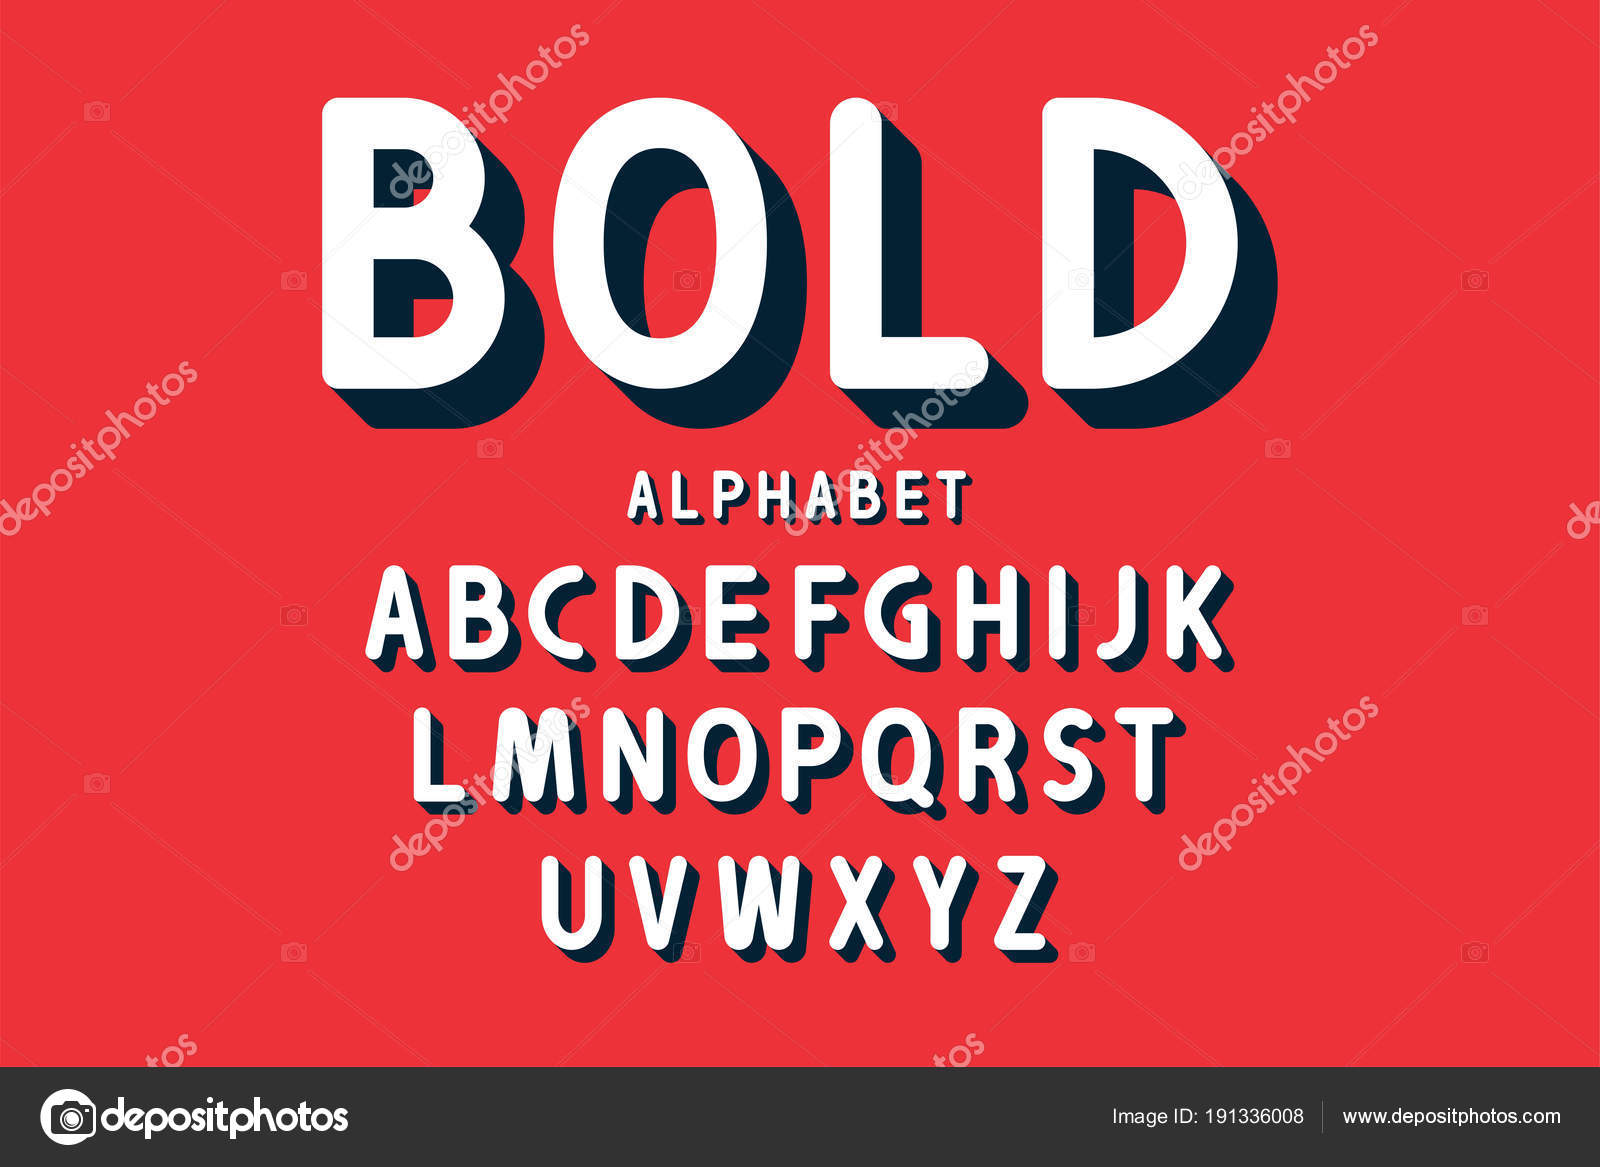 Retro Bold Font And Alphabet Rounded Letters With Long Shadows In Style Vintage Typography Vector By Yevgenij D